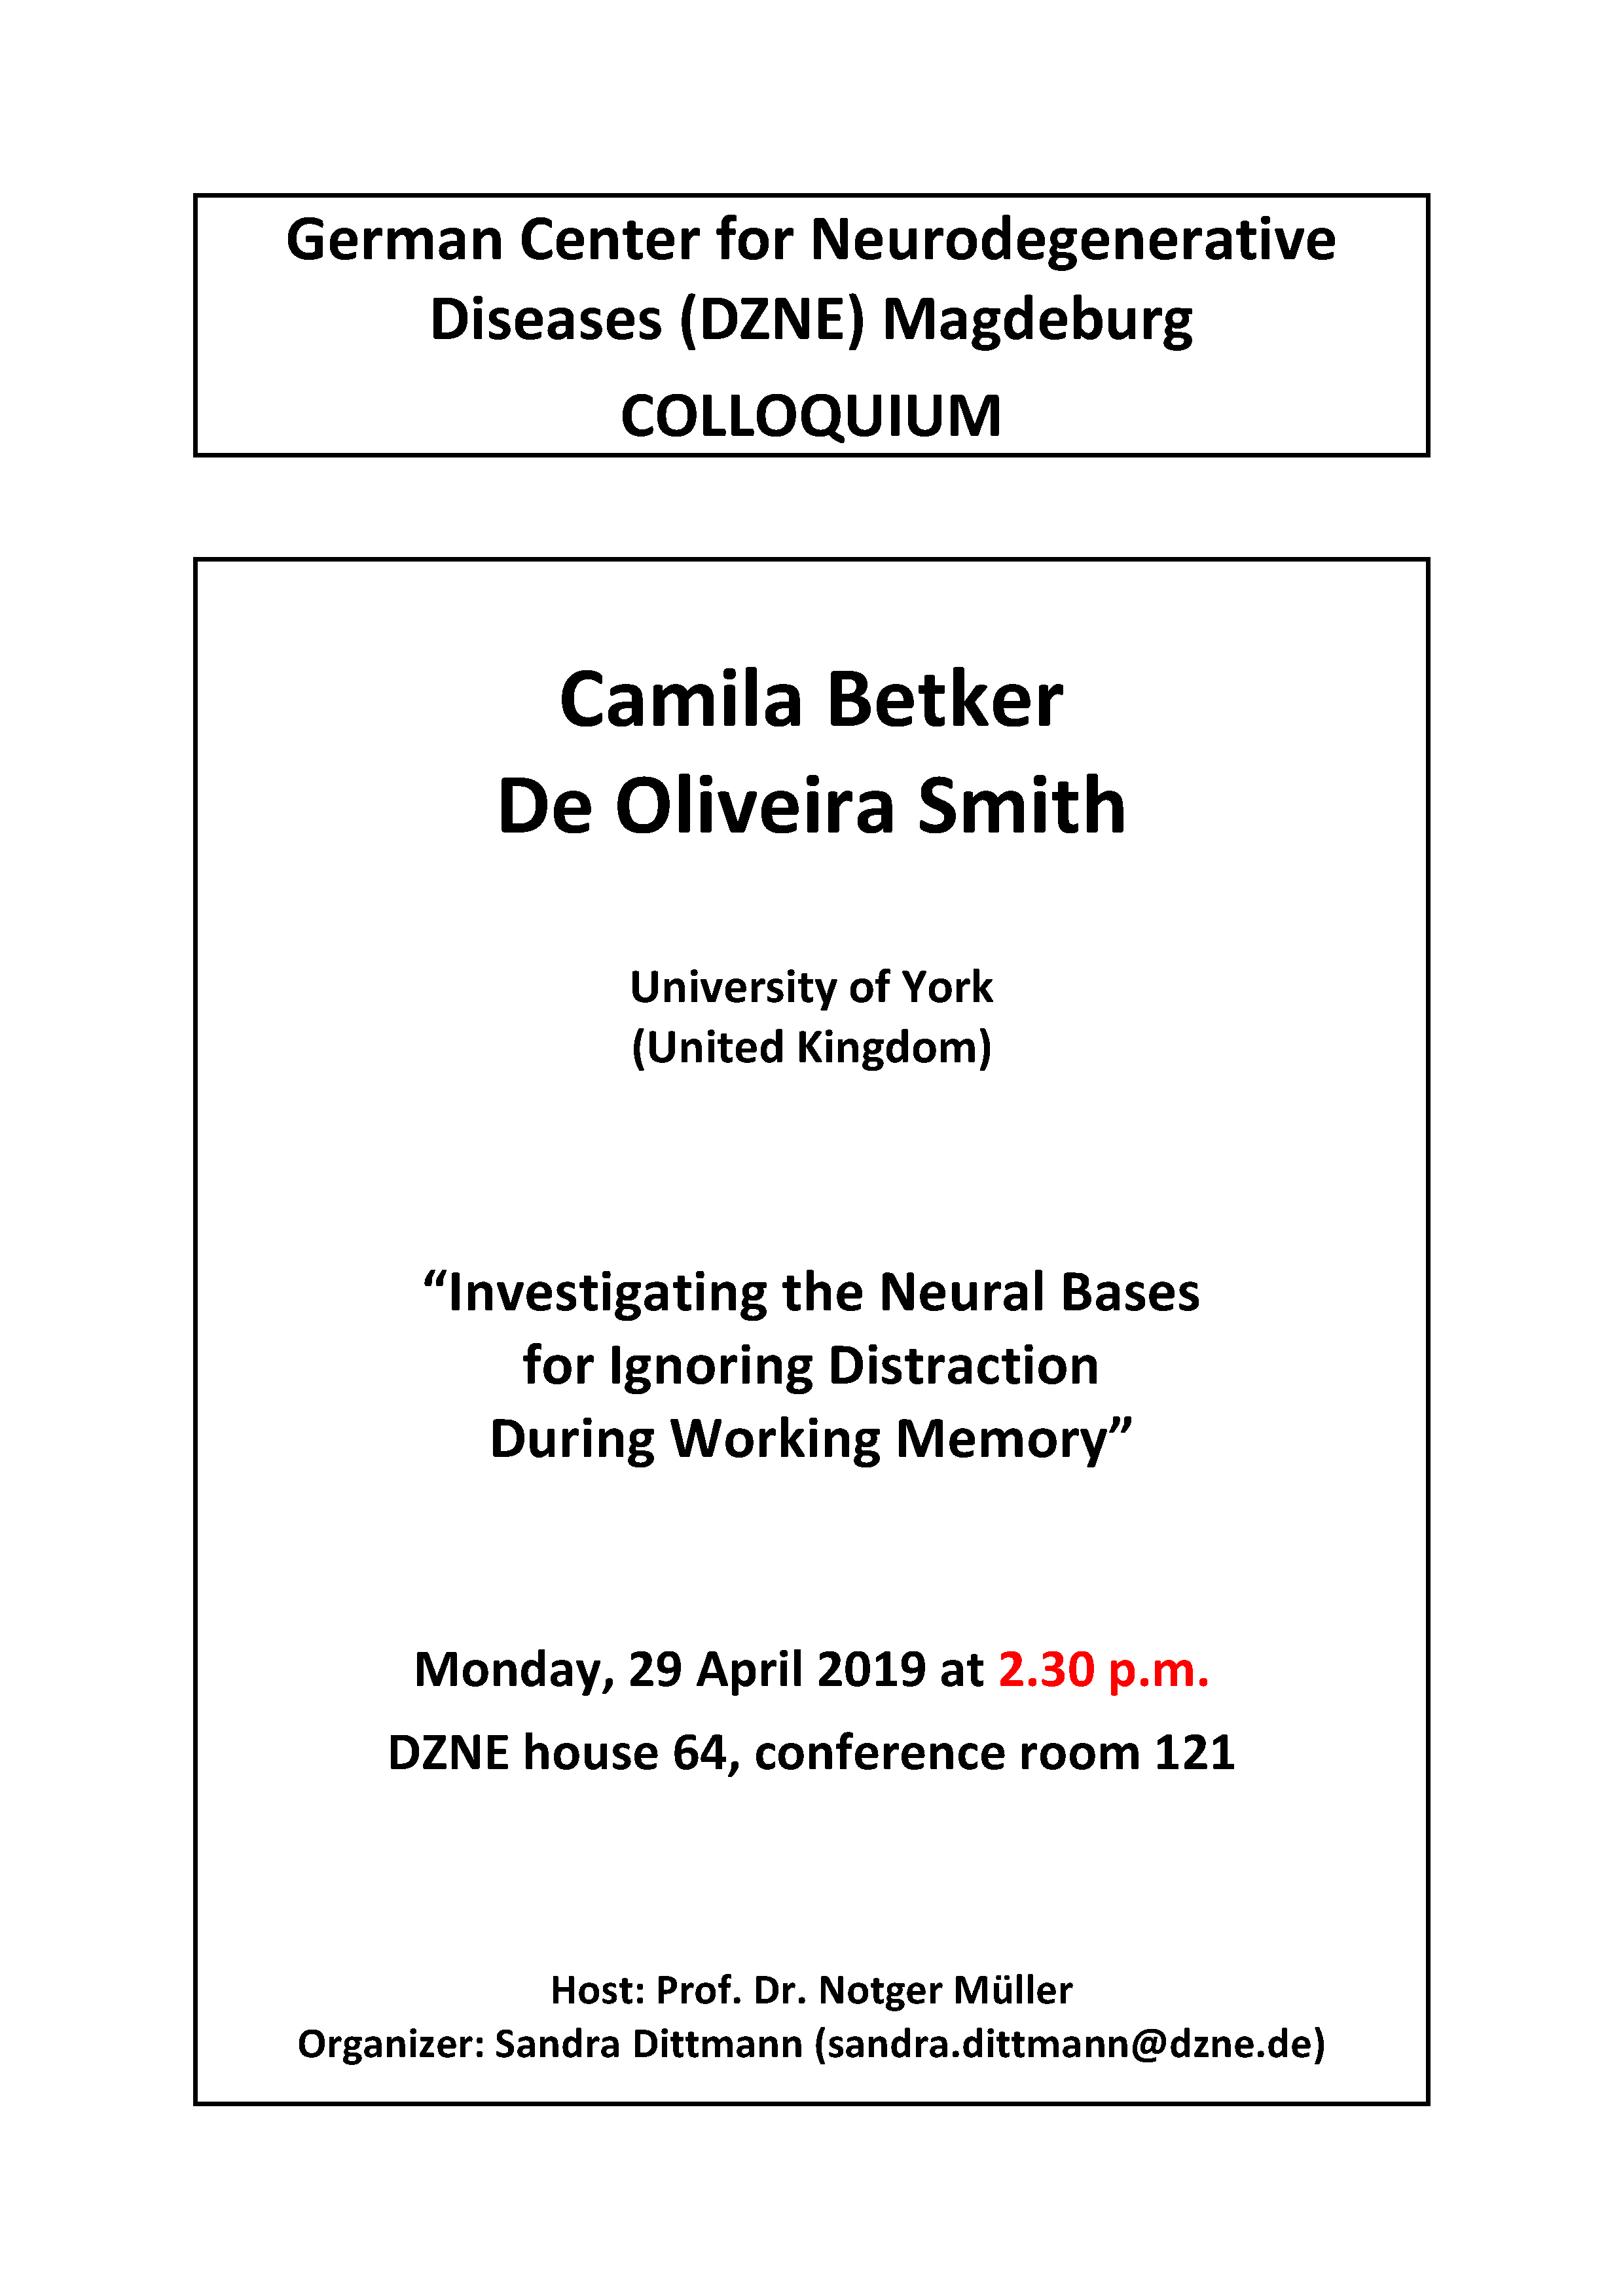 DZNE Colloquium: Investigating the Neural Bases for Ignoring Distraction During Working Memory @ DZNE house 64, conference room 121